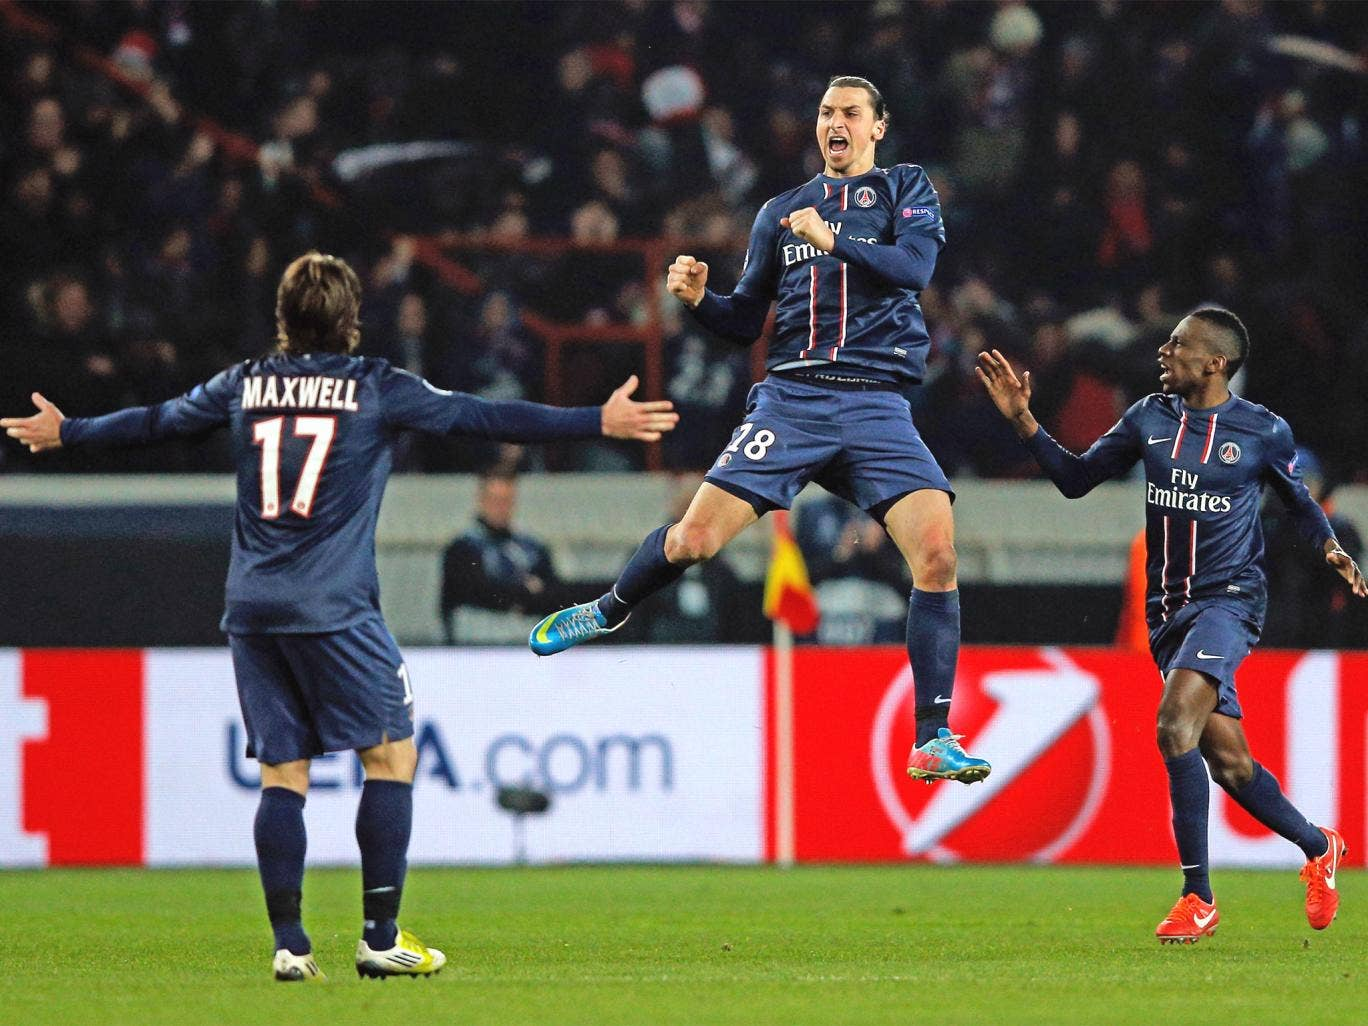 Zlatan Ibrahimovic scored PSG's first